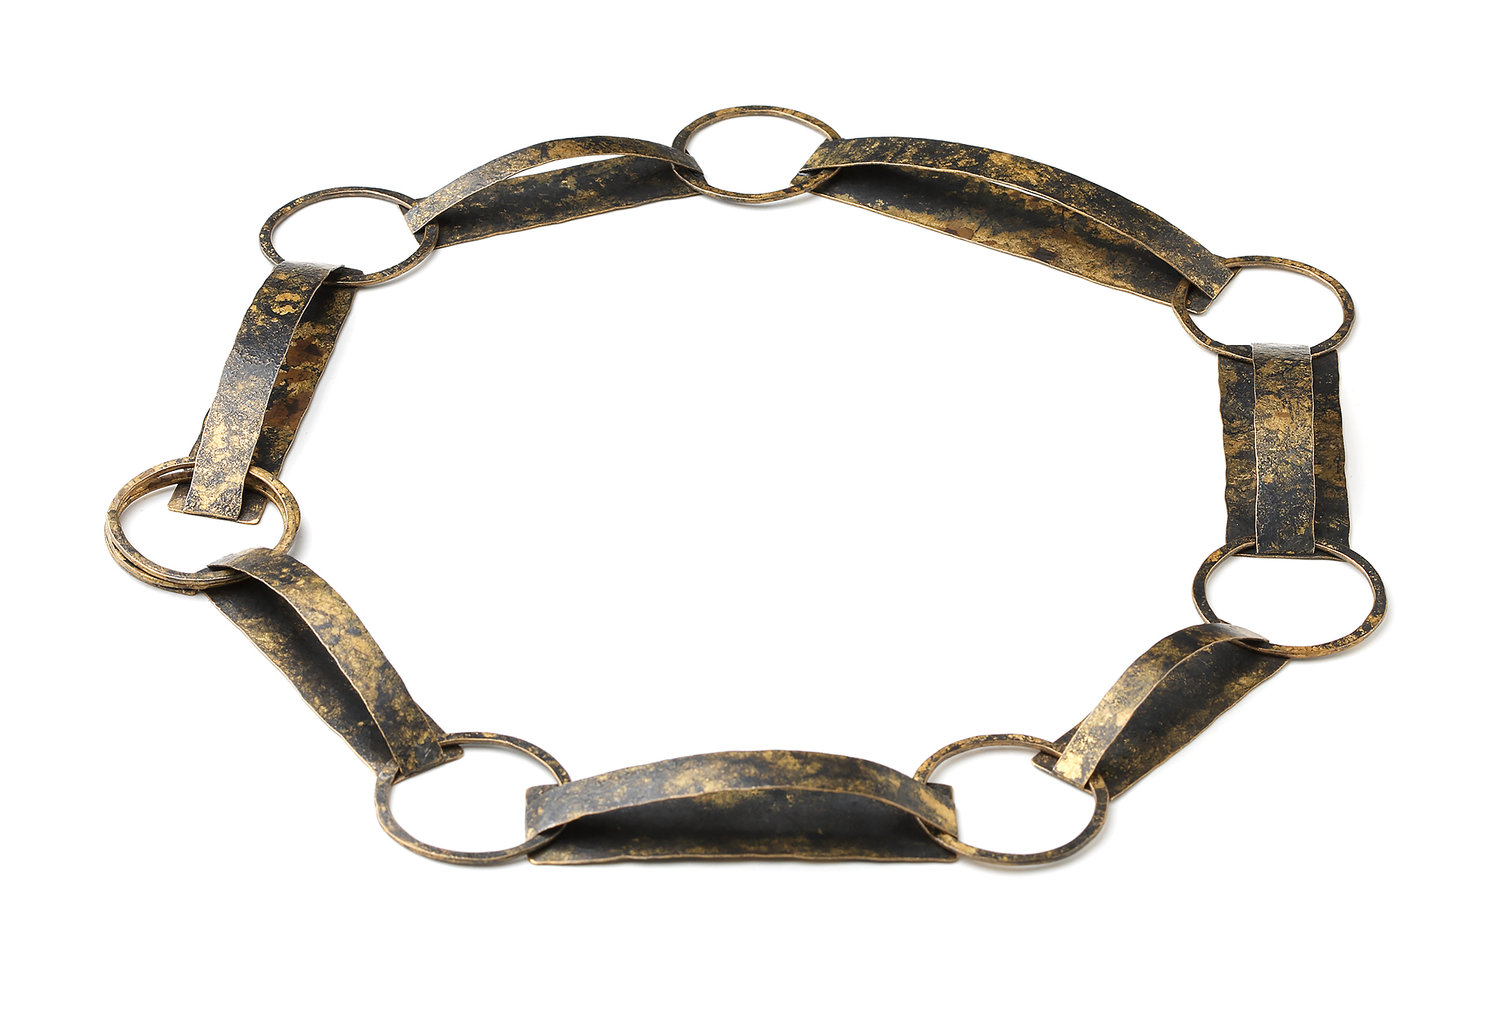 Biba Schutz, Art Jewelry, Necklace, Bronze, Tortoise Shell, Links Sherrie Gallerie